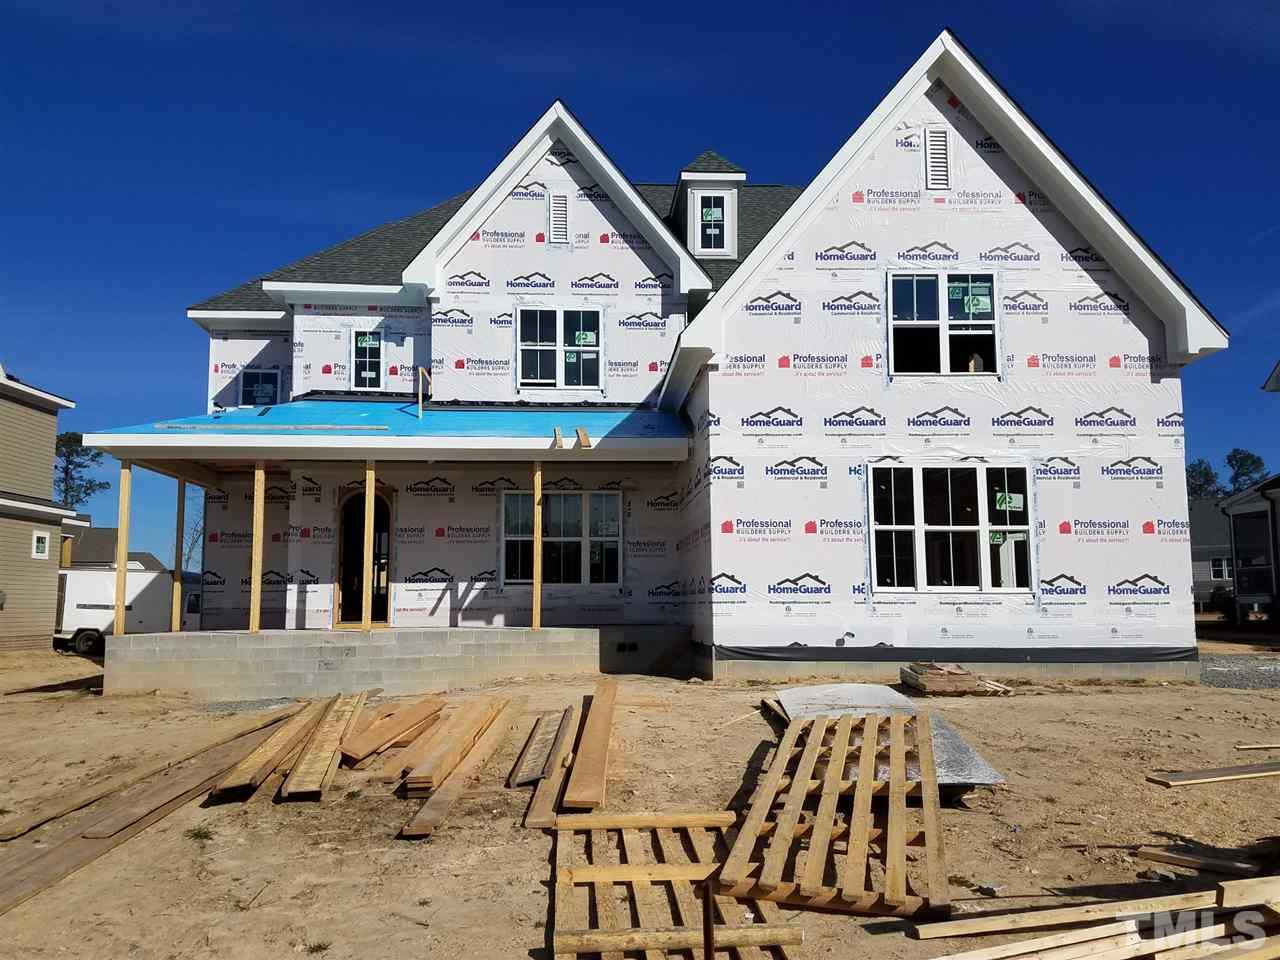 Beautiful custom built home by Gray Line Builders, two story foyer, open kit/family/breakfst area.  Beamed ceiling in Family room.  Huge island in kit, walk in pantry.  Hardwoods 1st floor, stairs and 2nd flr hall. Oversized 3 car garage with plenty of room for work space.  Home office with built in desk off drop zone, cubbies.  Finish third floor flex room for theater/adult bonus/home office with half bath.  Large owners suite with very tall vaulted ceilings and closet with his and her sides.